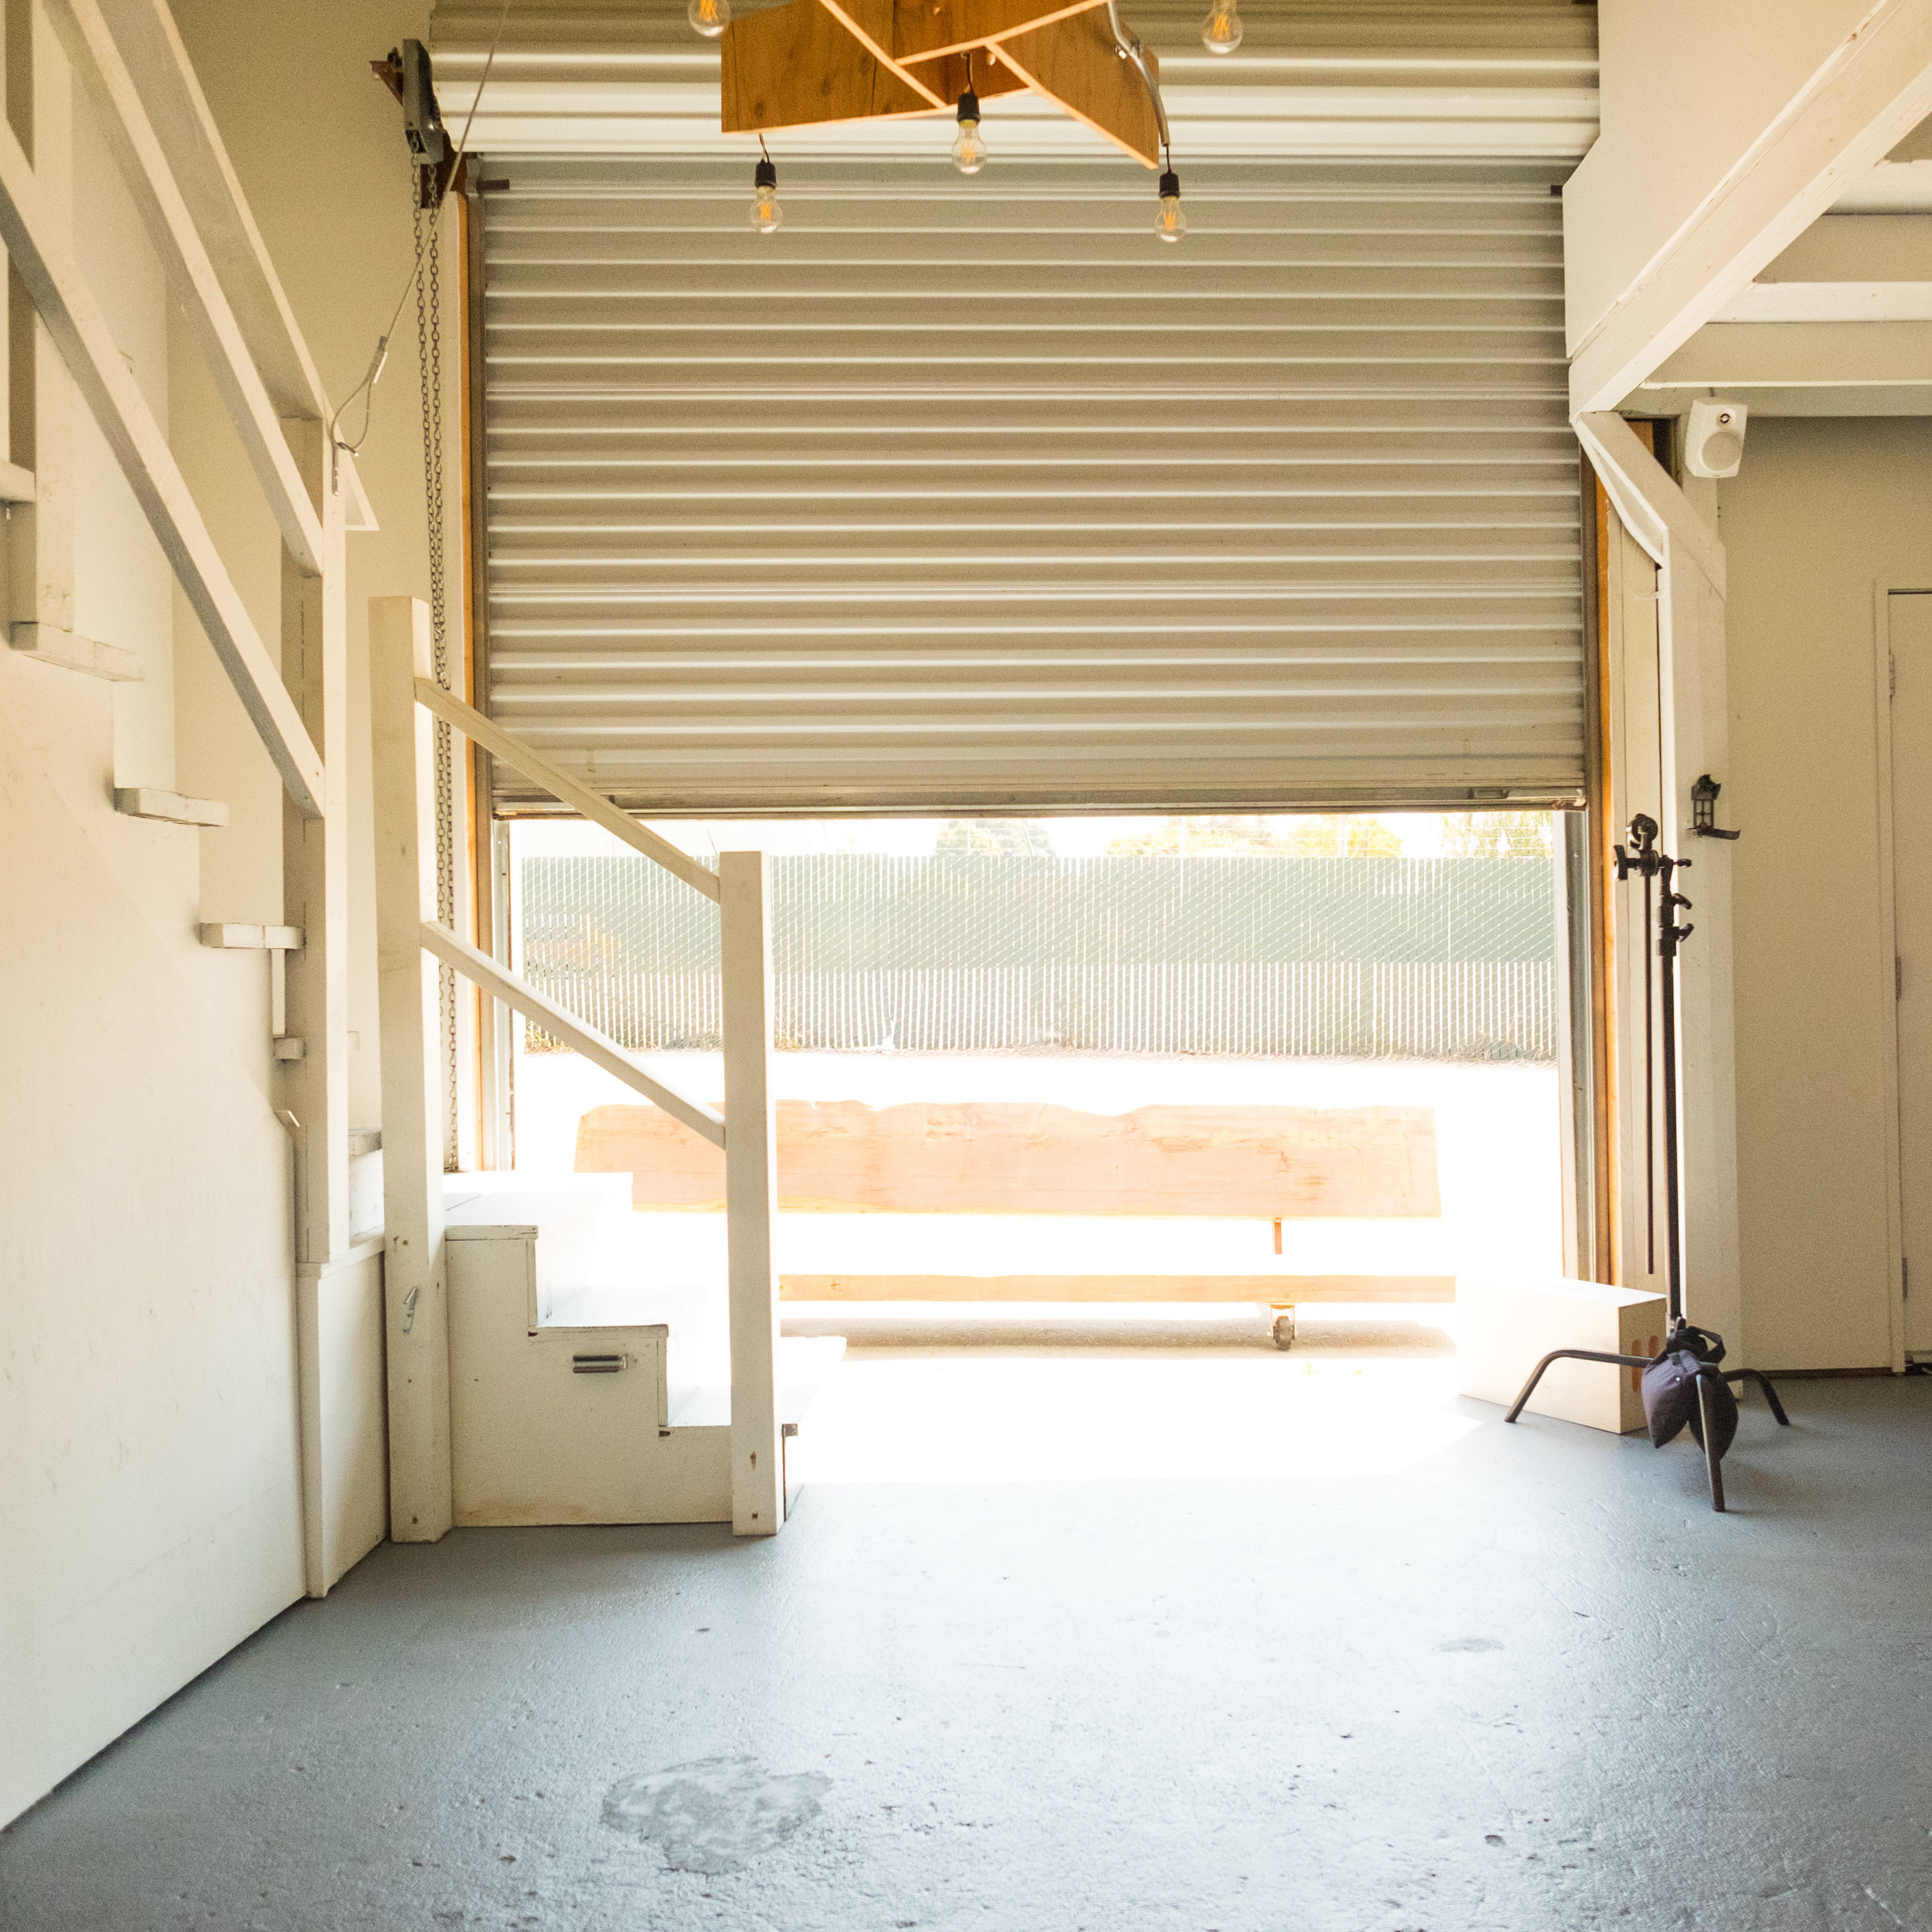 Daylight - A huge door with southern sun exposure and additional windows offer warm, natural lighting. Conversley, blackout blinds can plunge the set into darkness if that's what is called for.